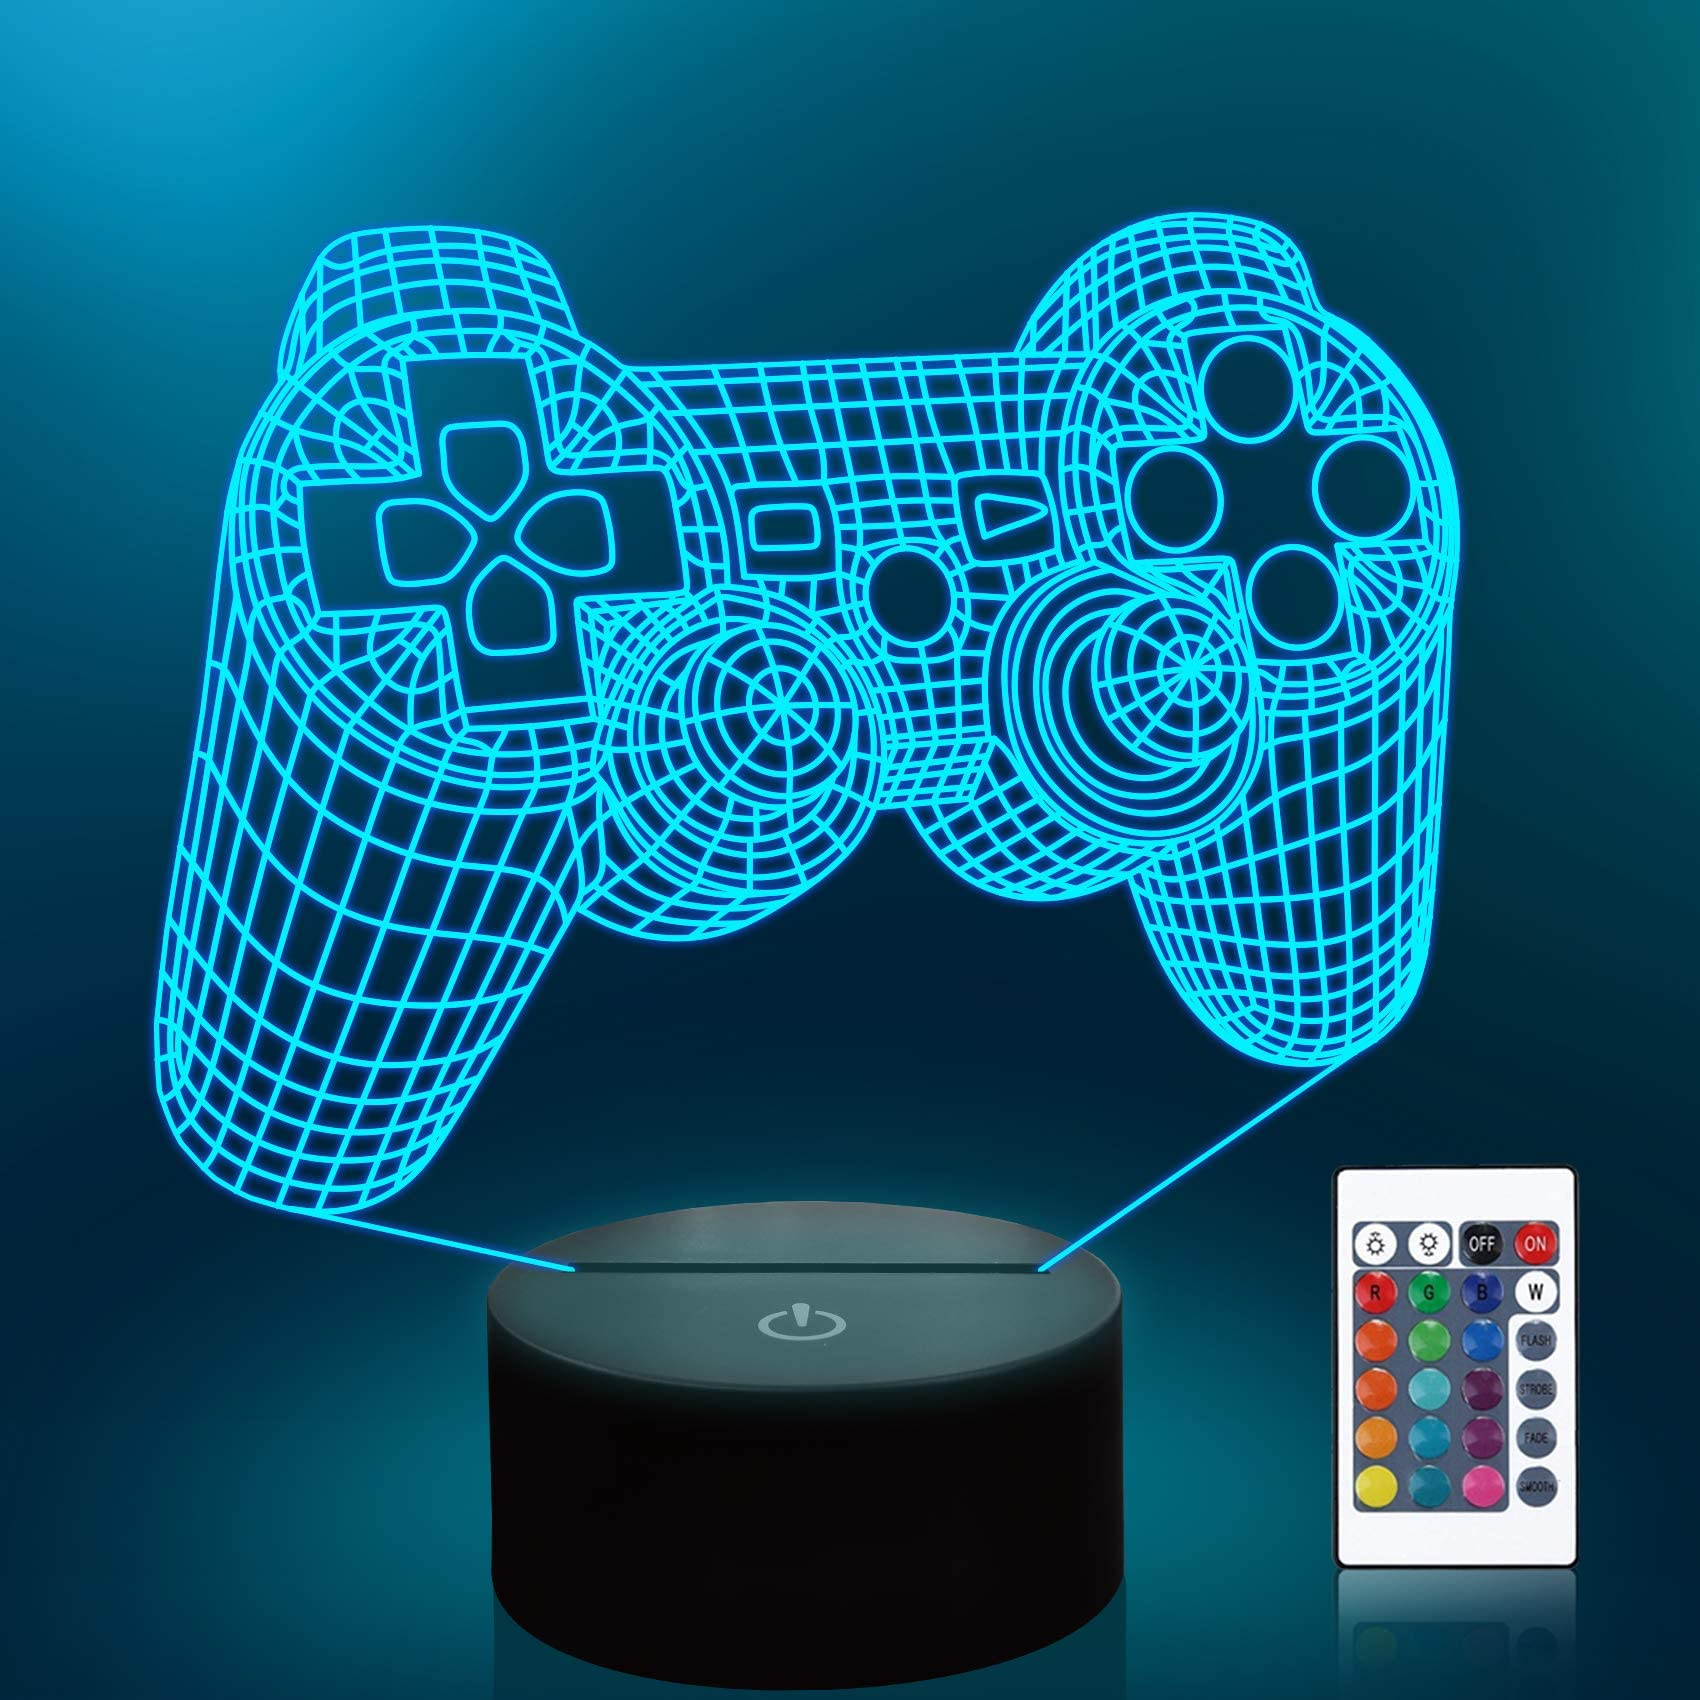 Puzzle Piece Autism Lamp LED Light Up Night Light and Personalized Free Engraved Autism Table Lamp with Remote 16 Color Options and Dimmer